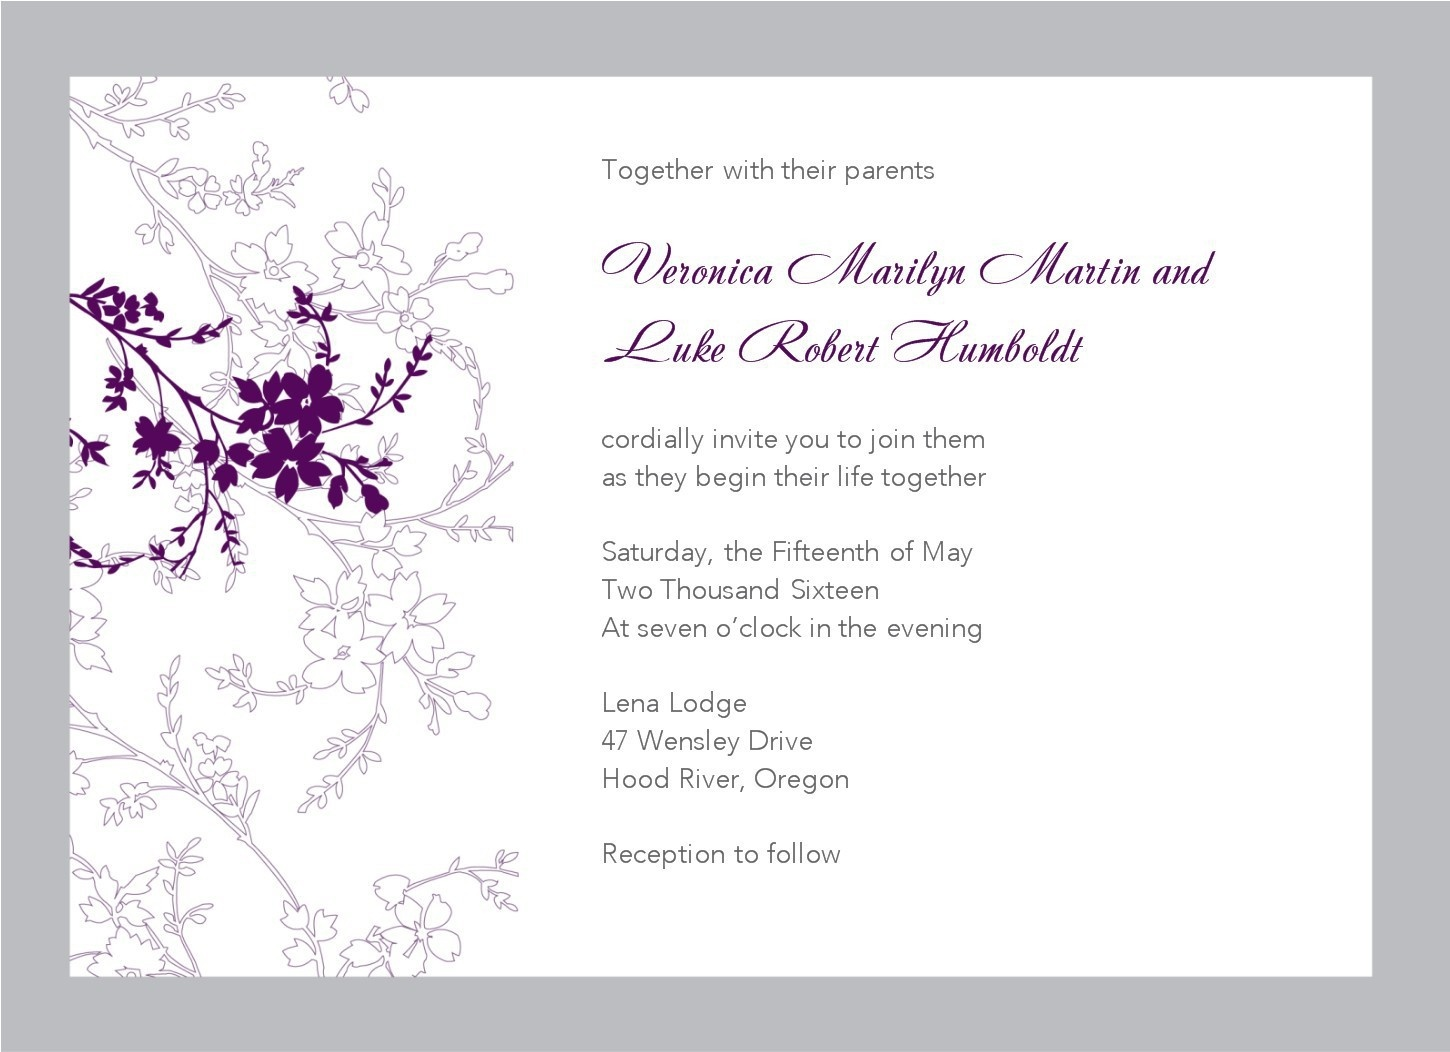 002 Free Downloads Invitation Templates Rustic Wedding For Word - Free Printable Wedding Invitation Templates For Microsoft Word